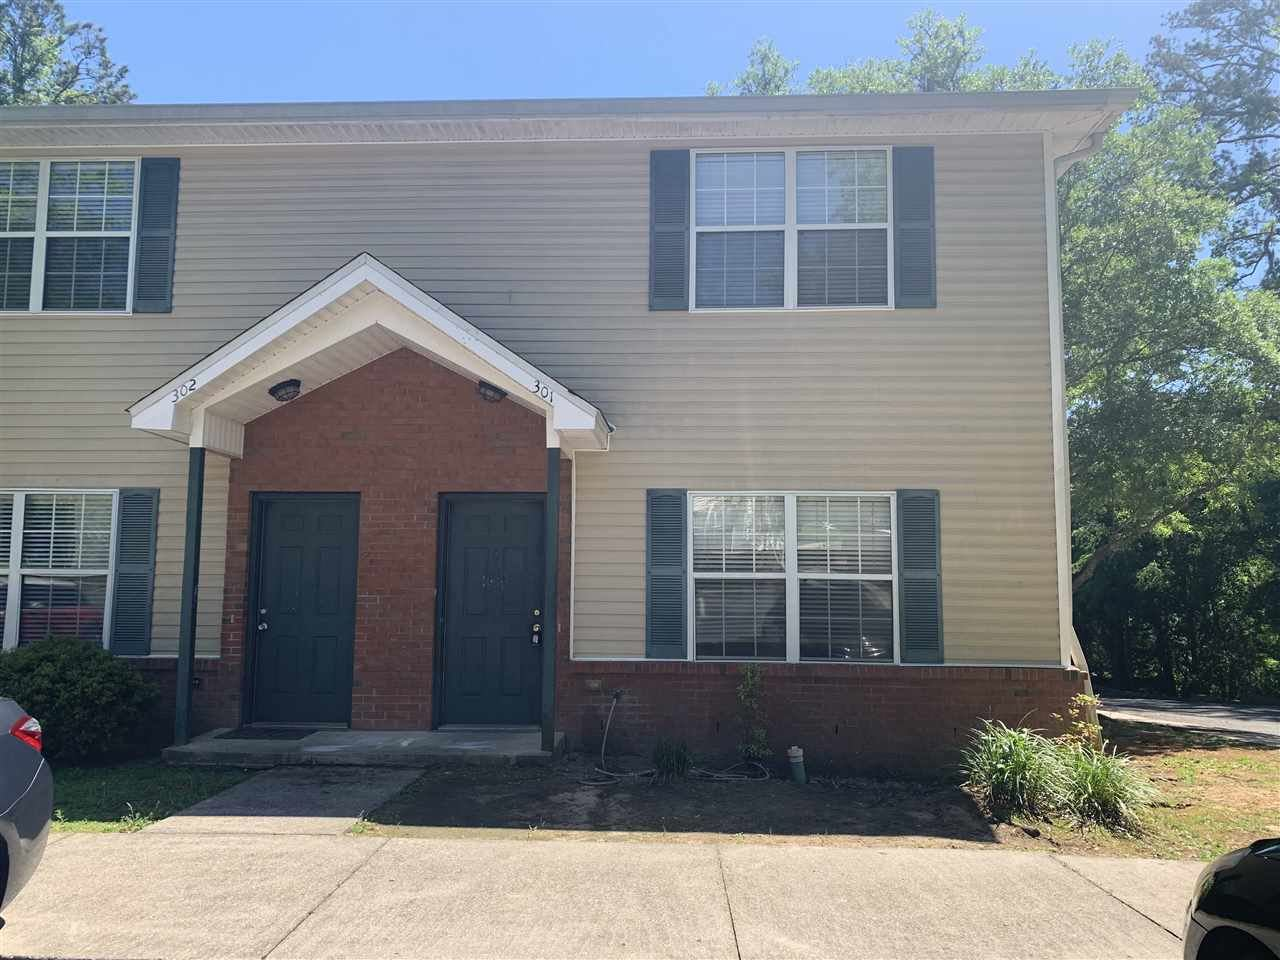 2403 Hartsfield Road #301, Tallahassee, FL 32302 - MLS#: 330821